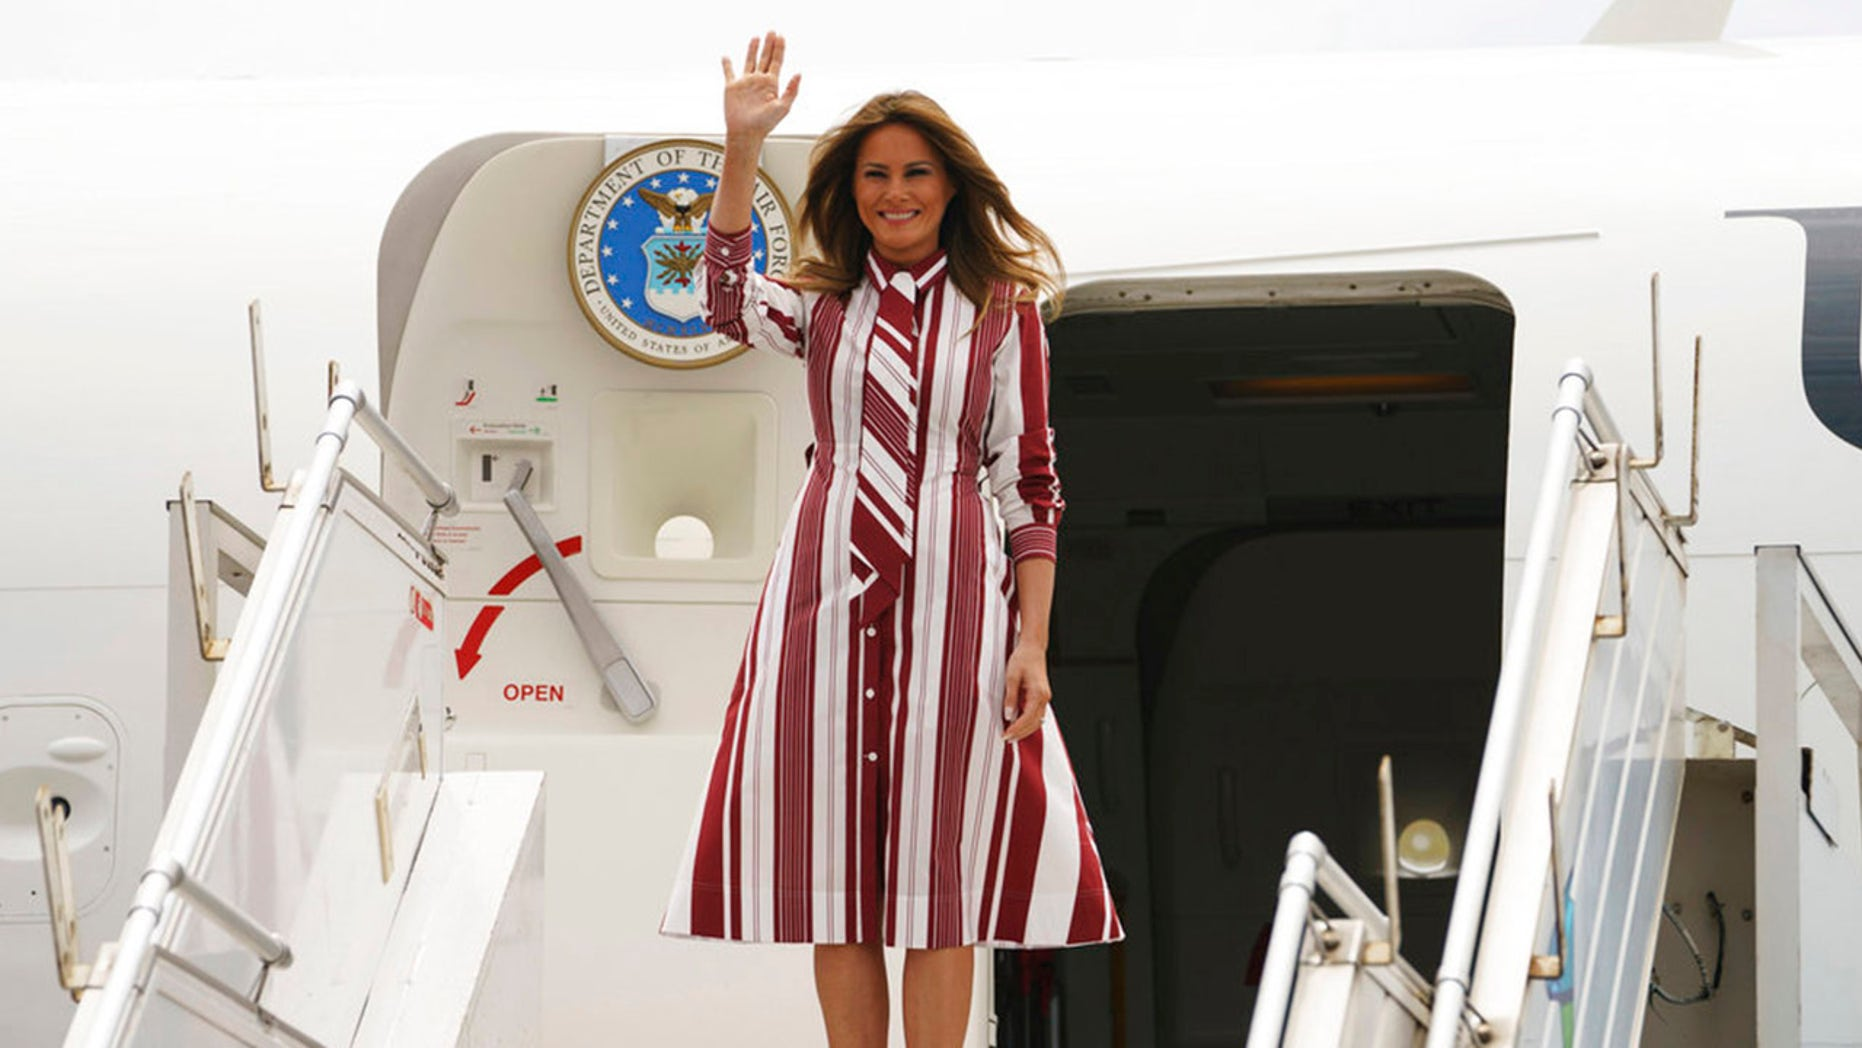 Melania Trump arrived in Ghana on Tuesday as part of her first big international trip.